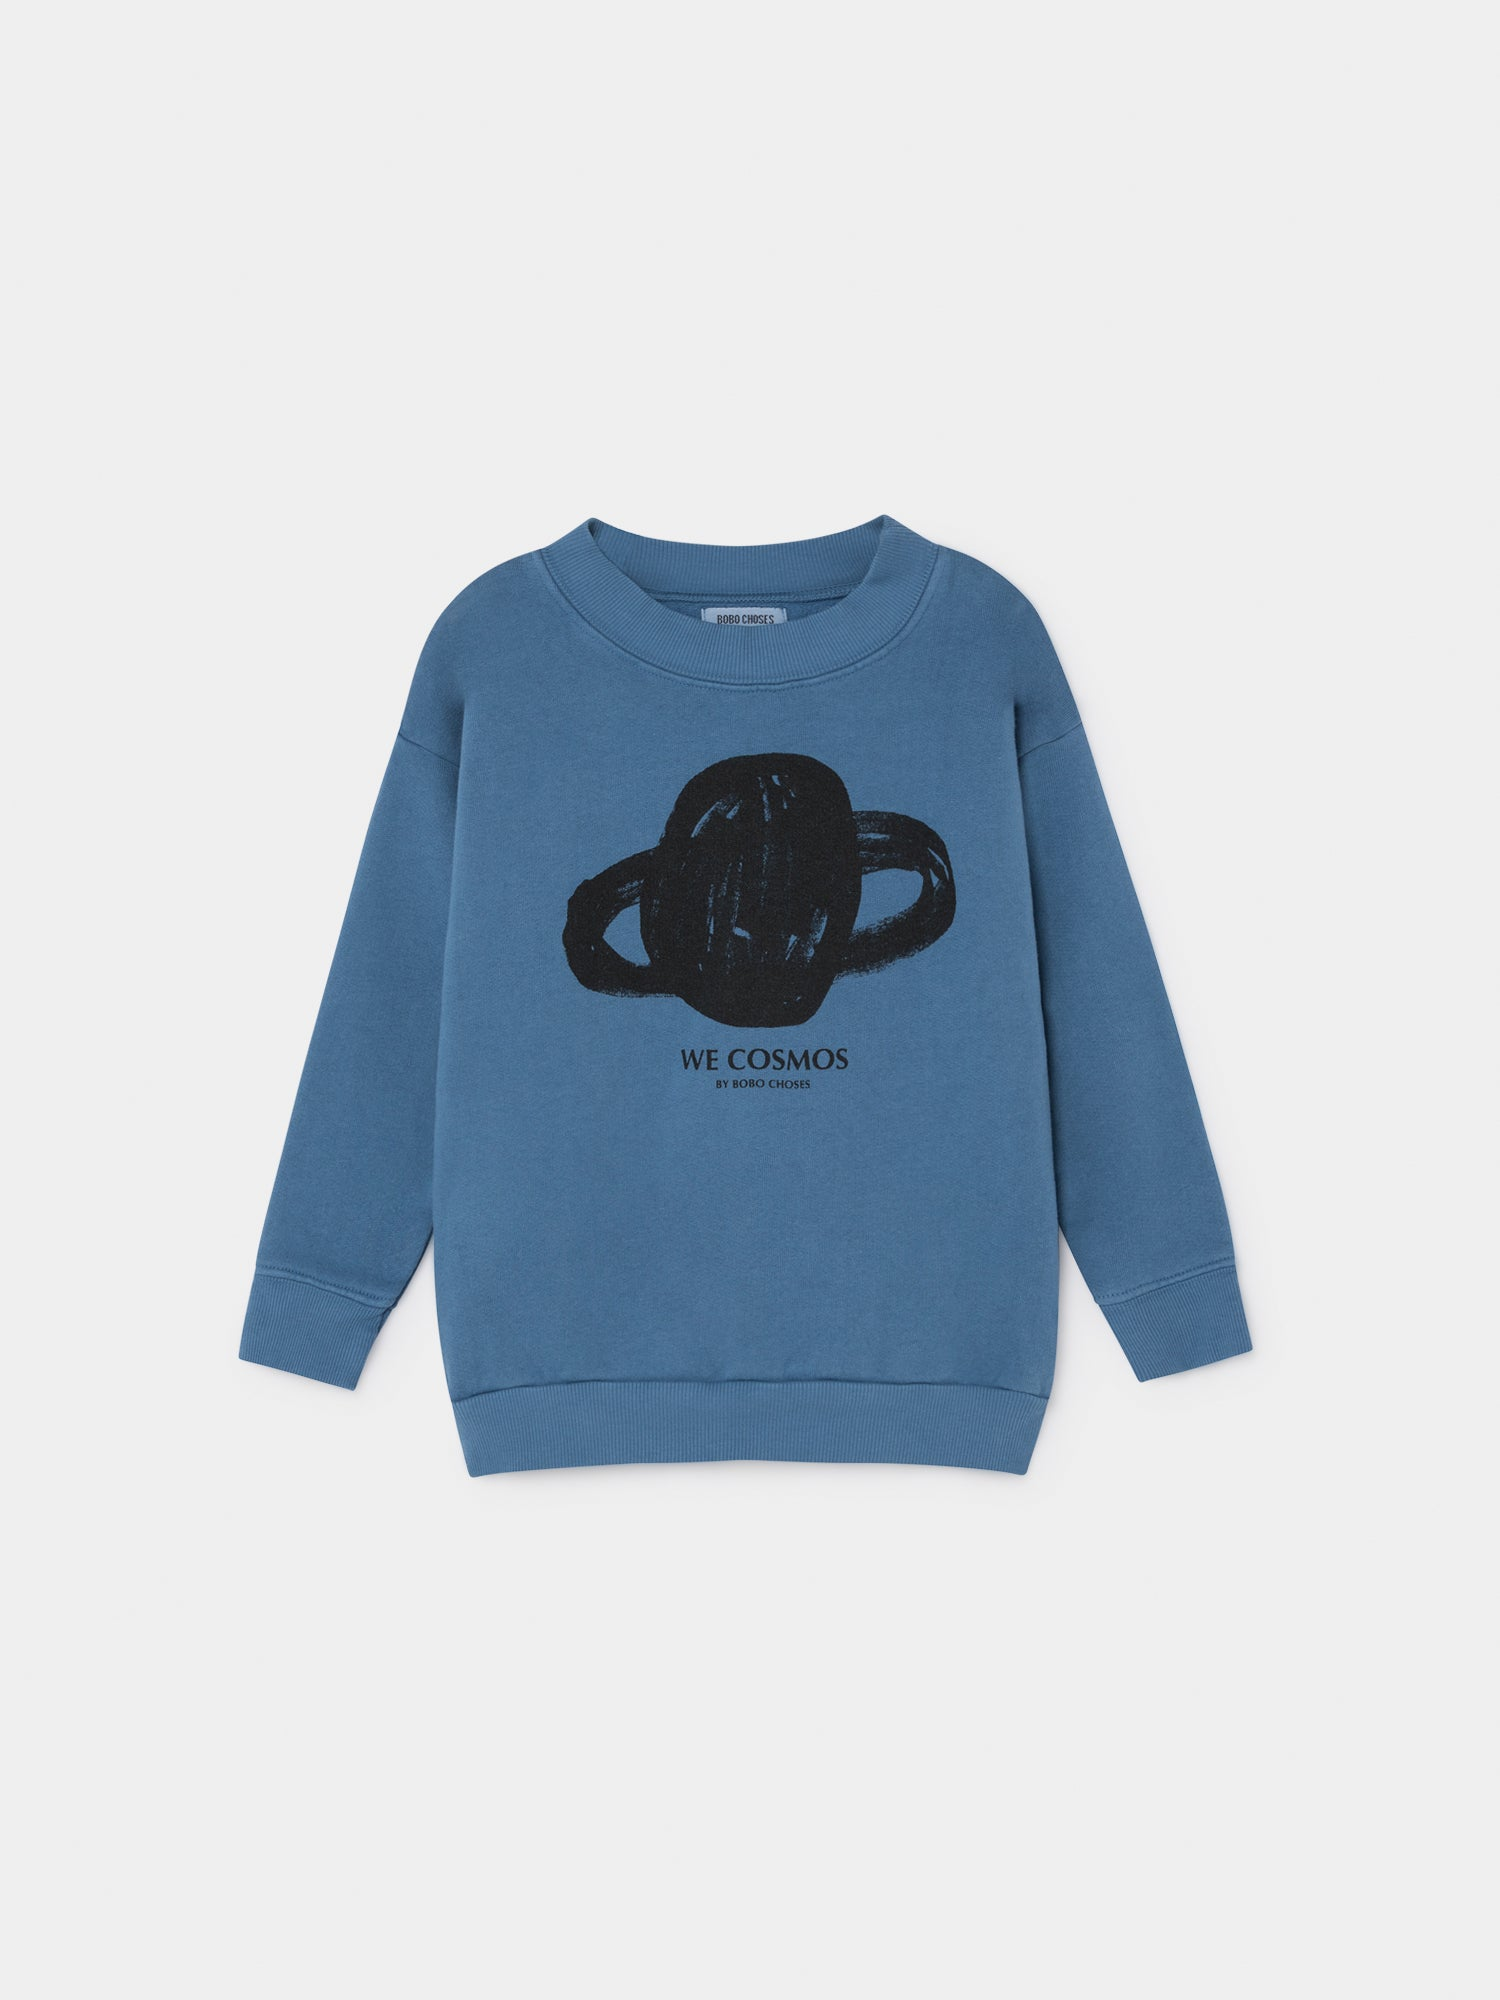 Saturn Sweatshirt